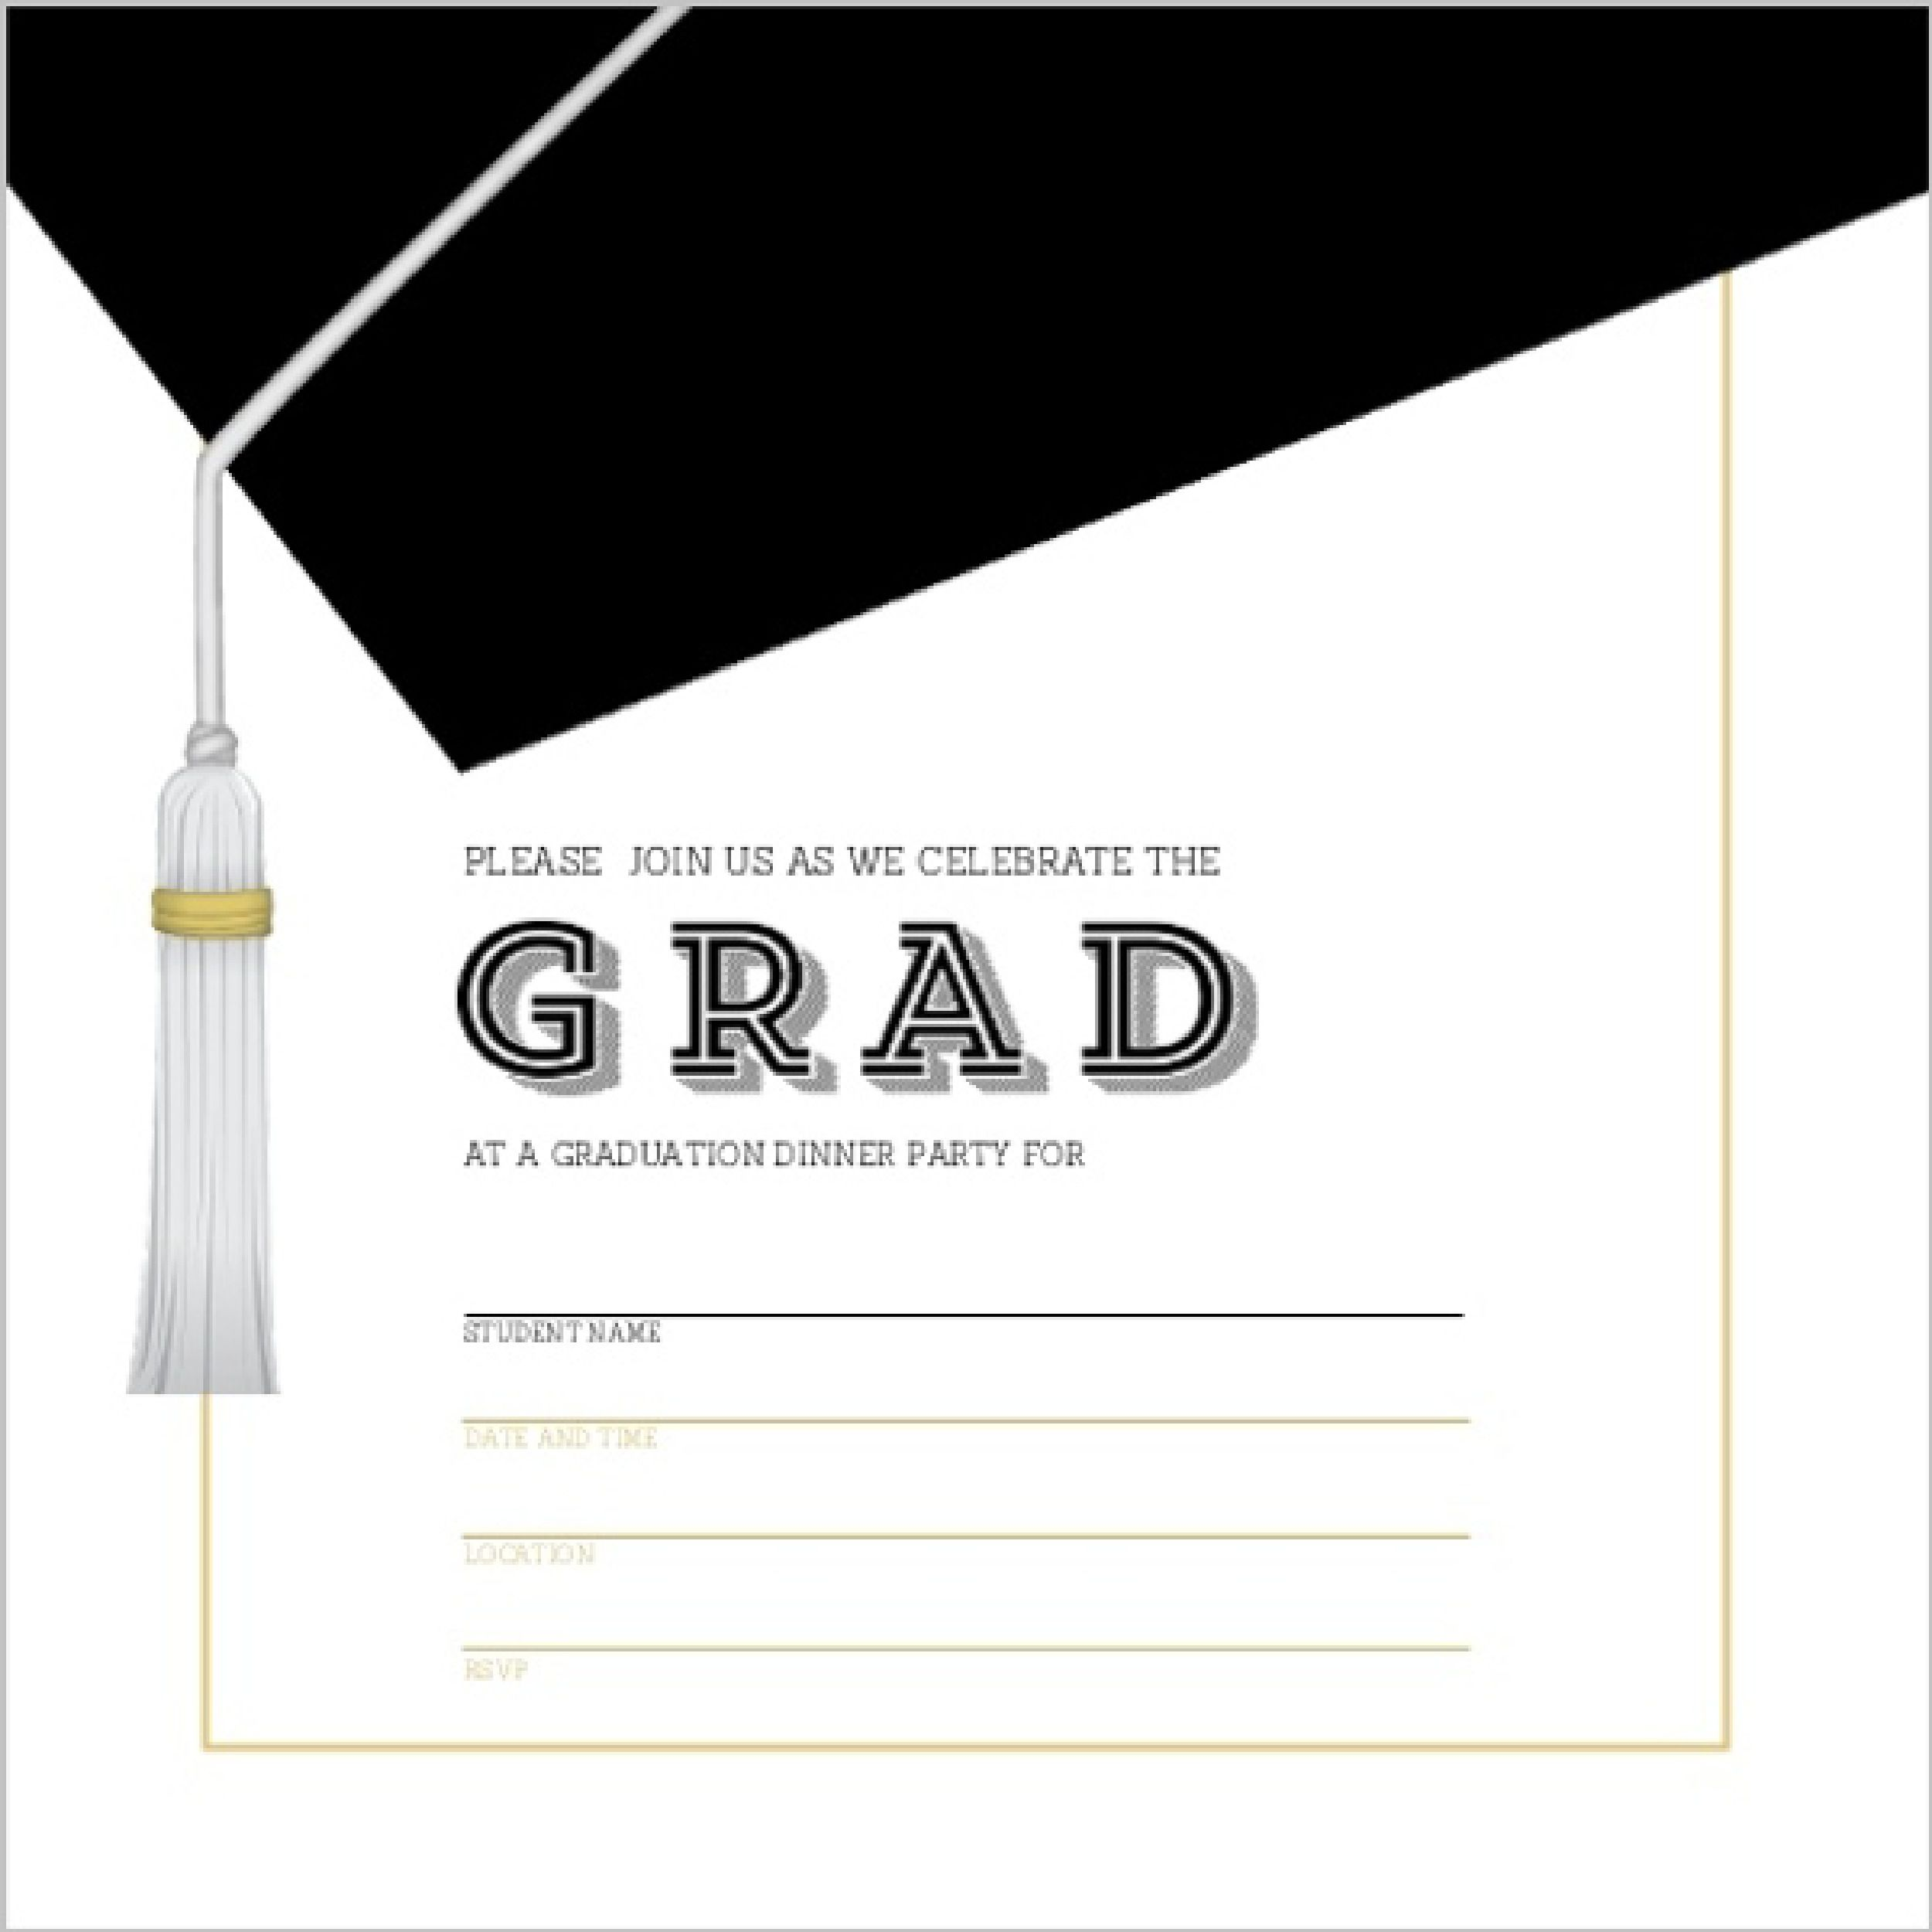 008 Awesome Graduation Invitation Template Free Picture  Maker Download KindergartenFull